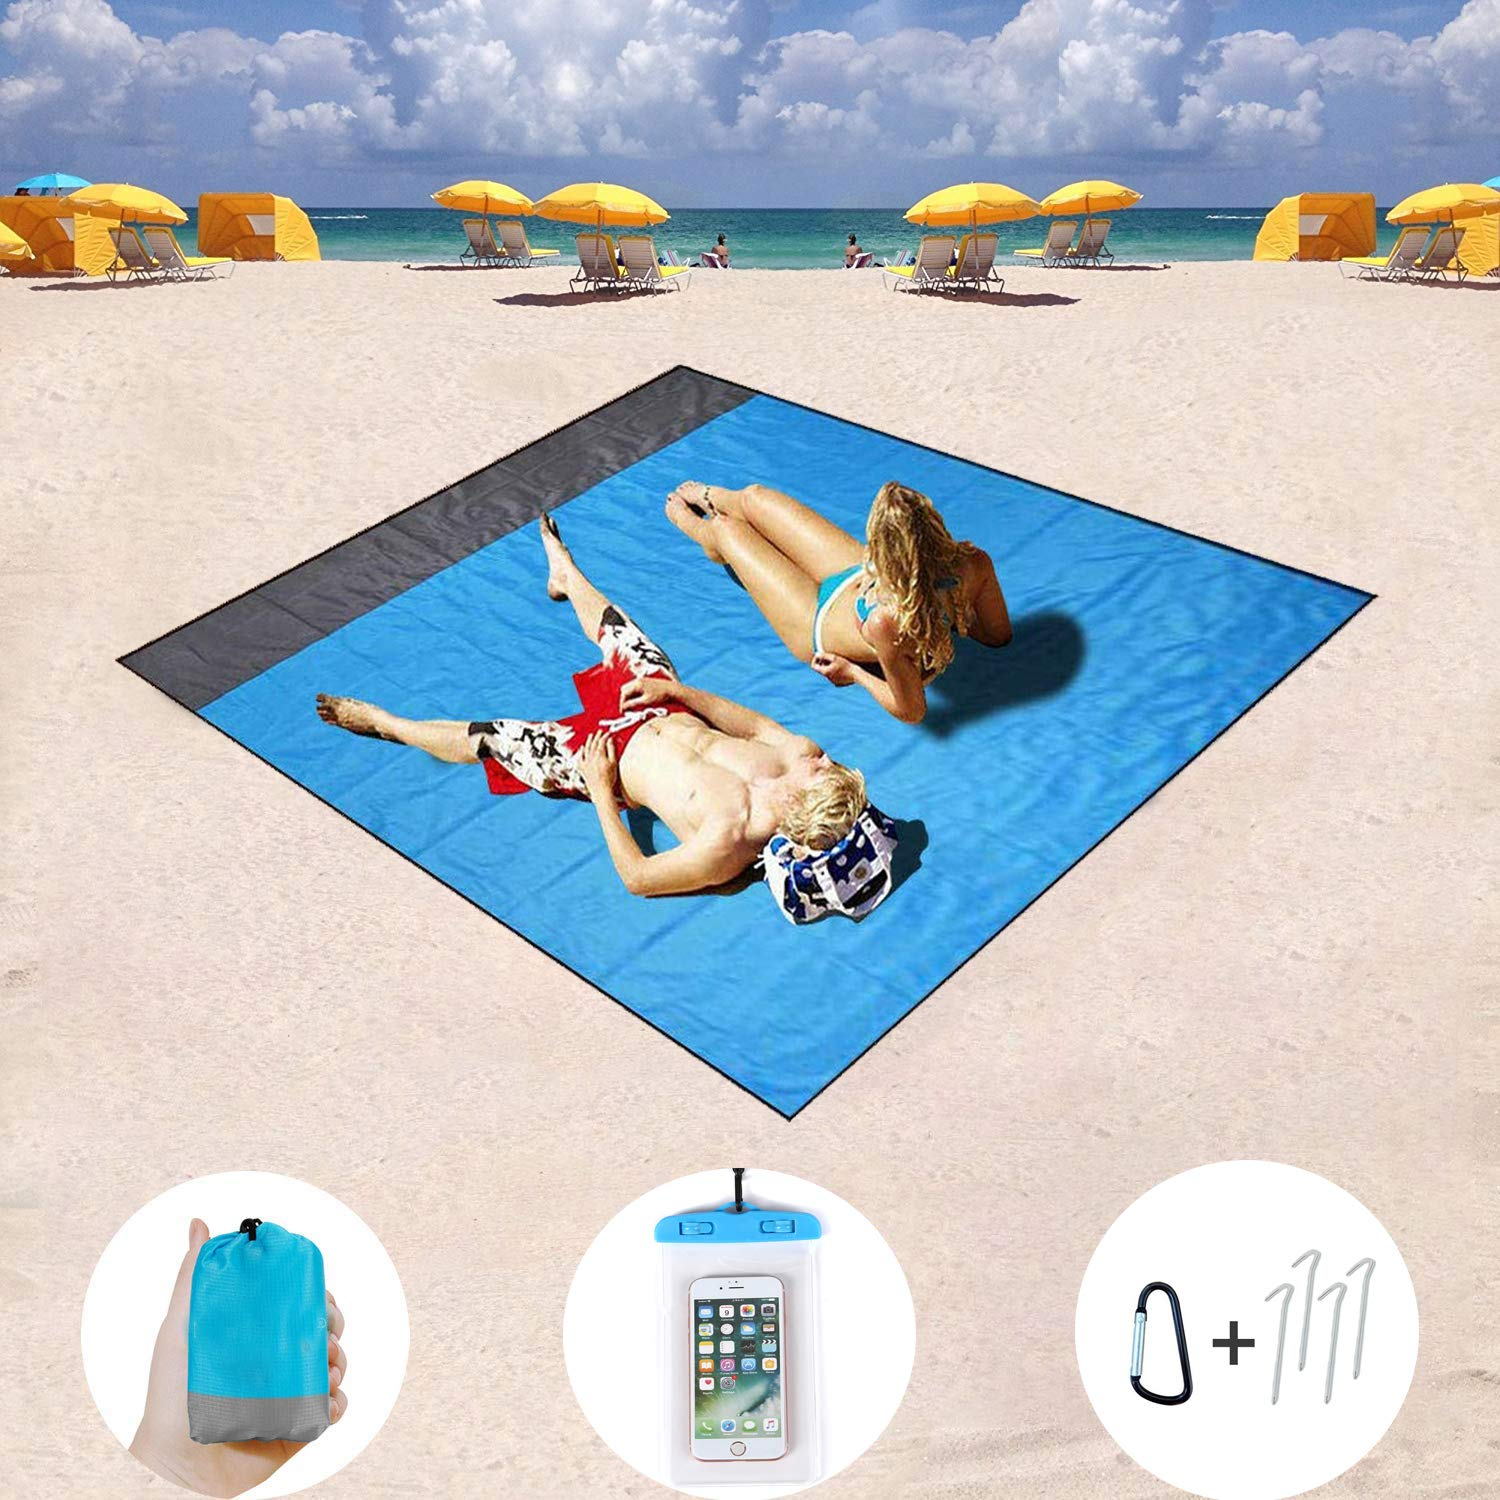 Camping Hiking and Music Festivals Leoduo Beach Blanket,Portable Quick Drying Wear Resistance Waterproof and Sand Proof Compact Pocket Blanket,Picnic Mat,Travel